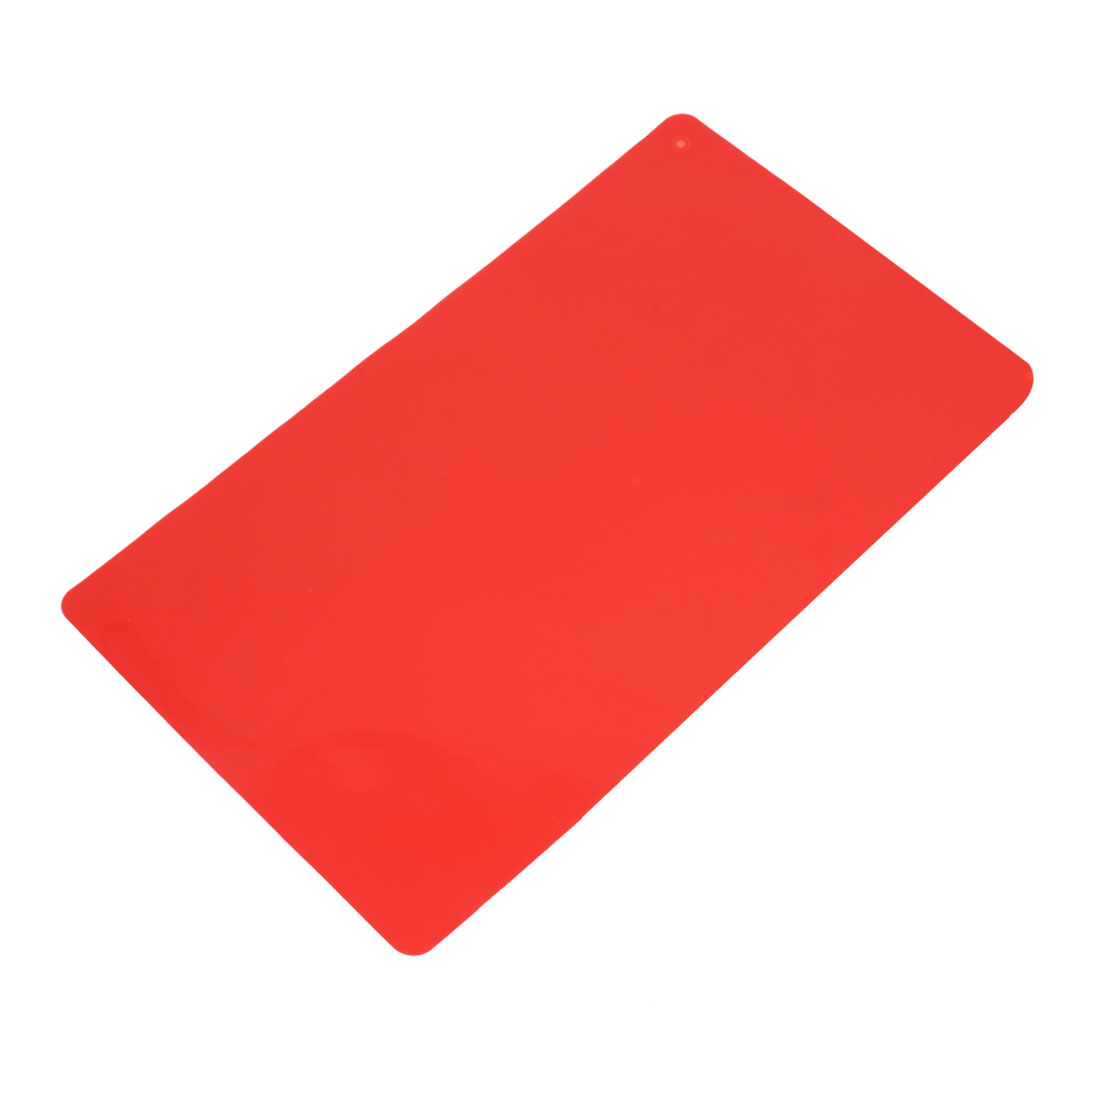 Rectangle Shape Silicone Heat Resistant Cup Pan Table Mat Pad Coaster Red